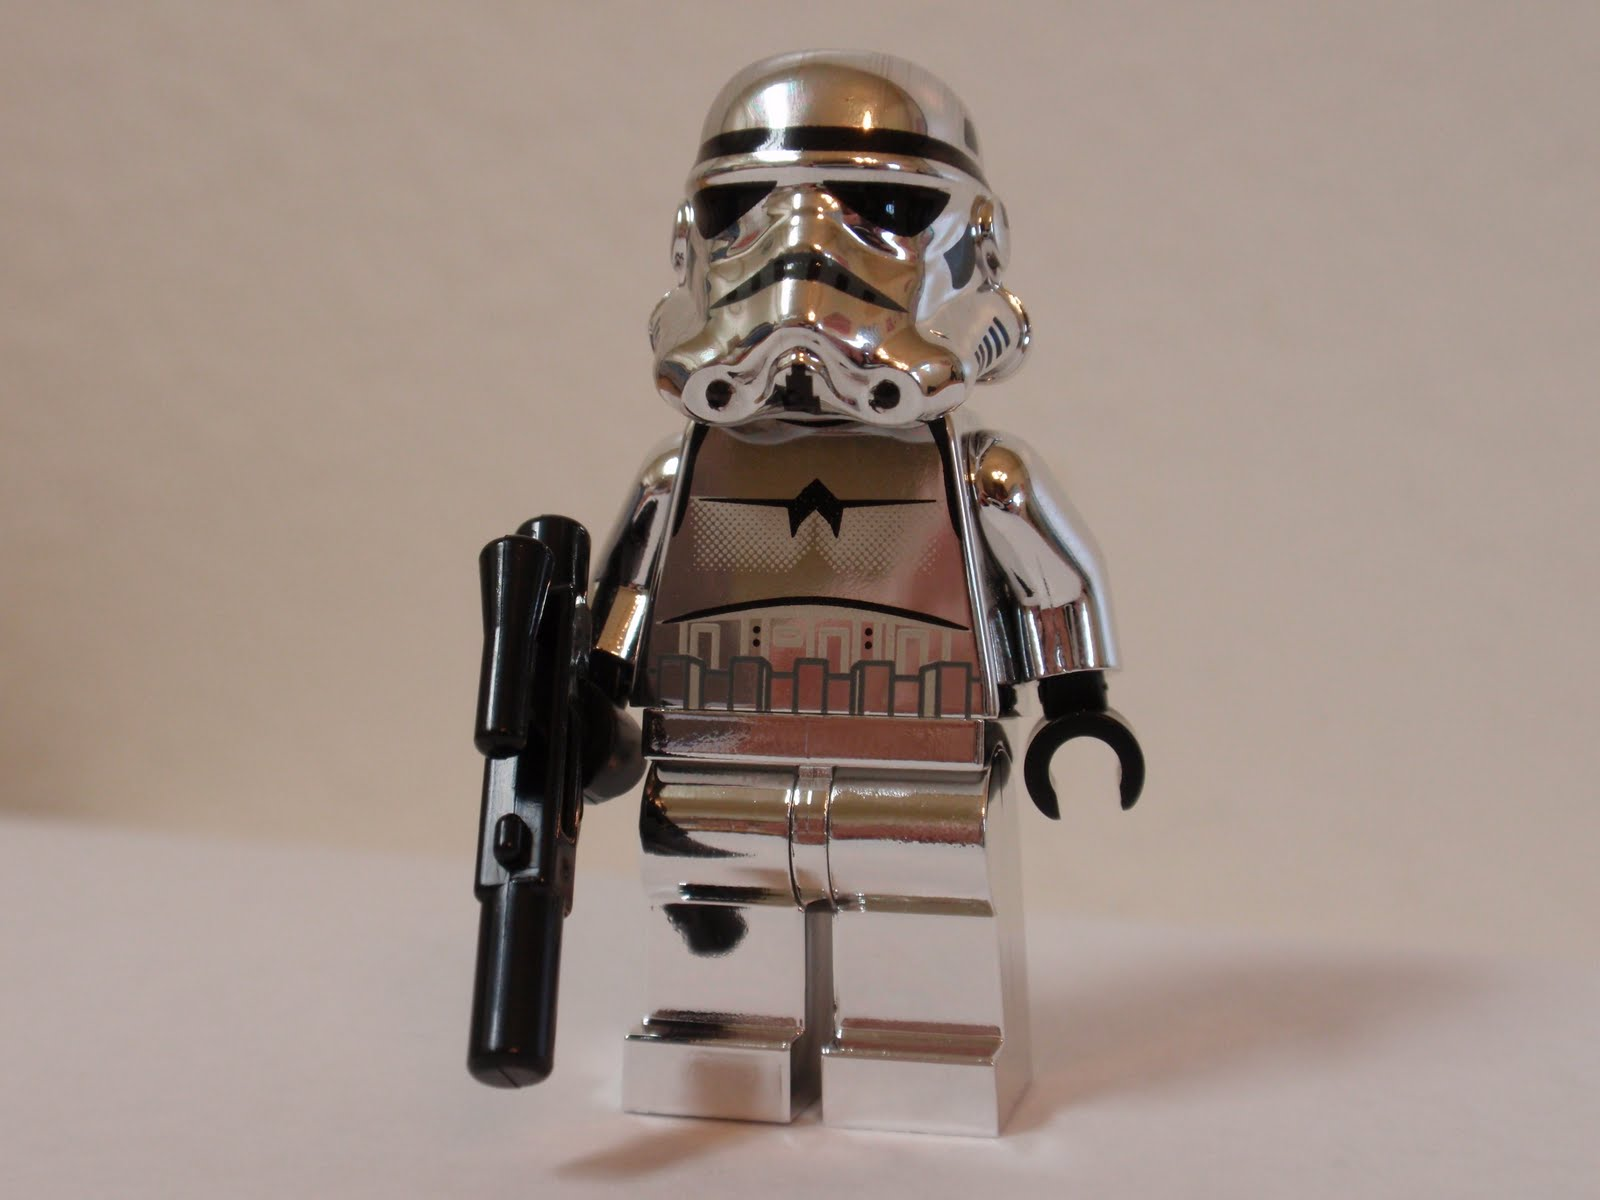 lego star wars stormtroopers wallpapers - Star wars stormtroopers toys macro lego hd wallpaper.jpg